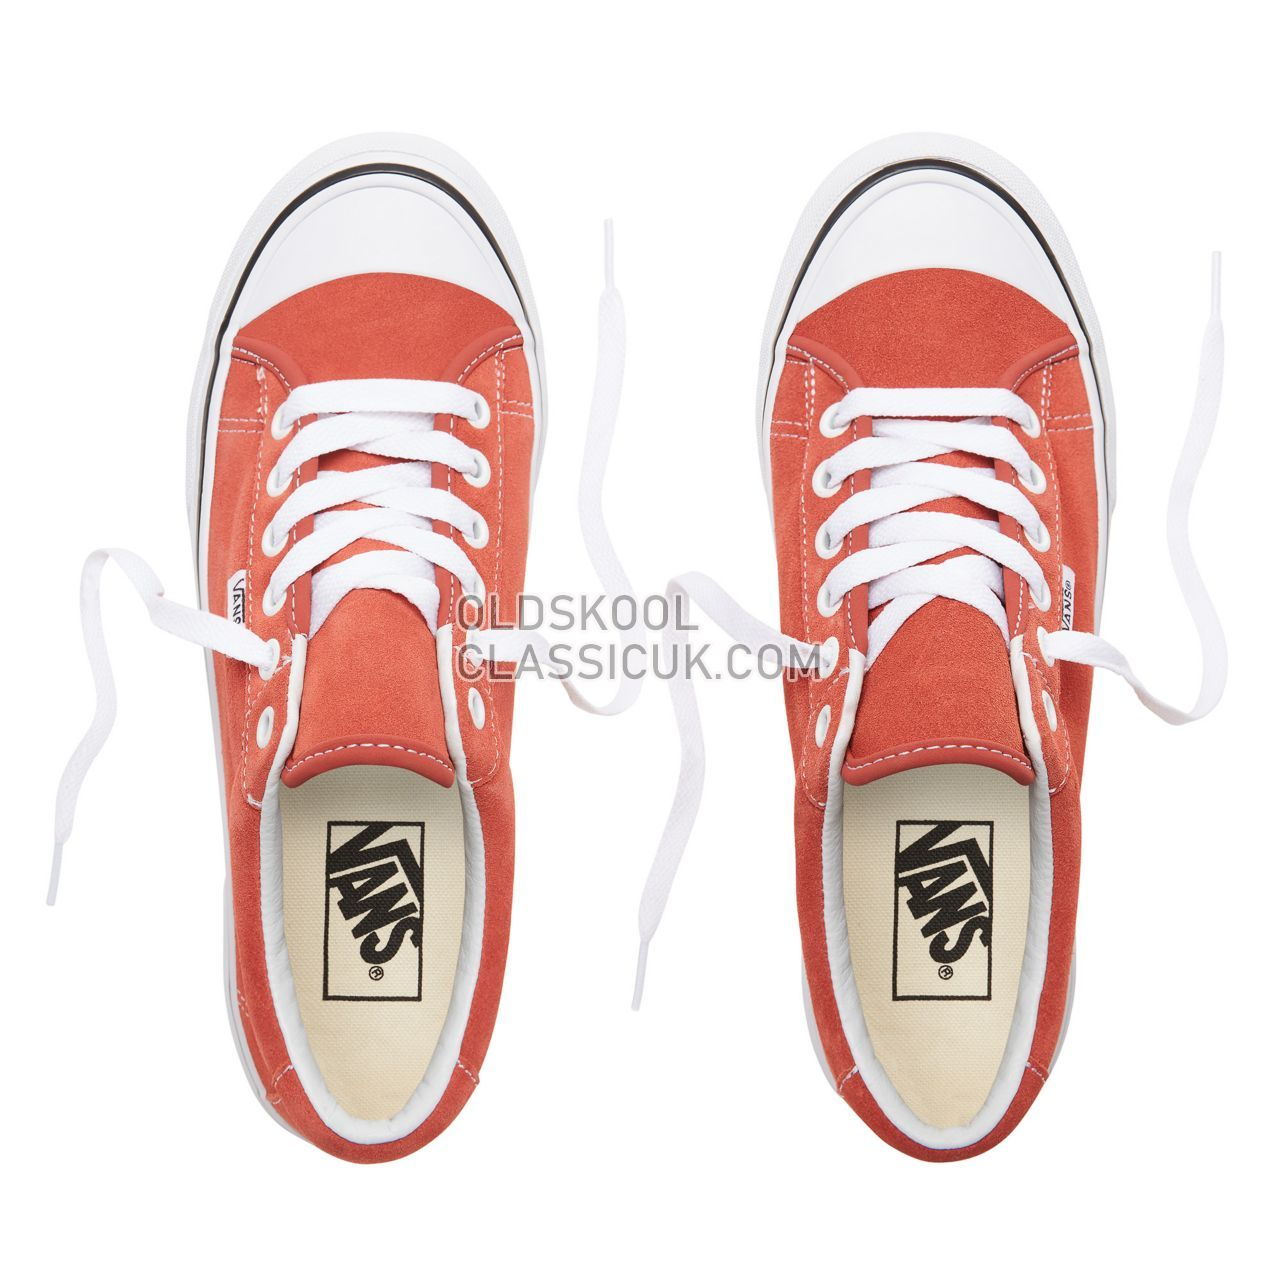 Vans Suede Style 29 Sneakers Womens (Suede) Hot Sauce/True White VN0A3MVHUR8 Shoes